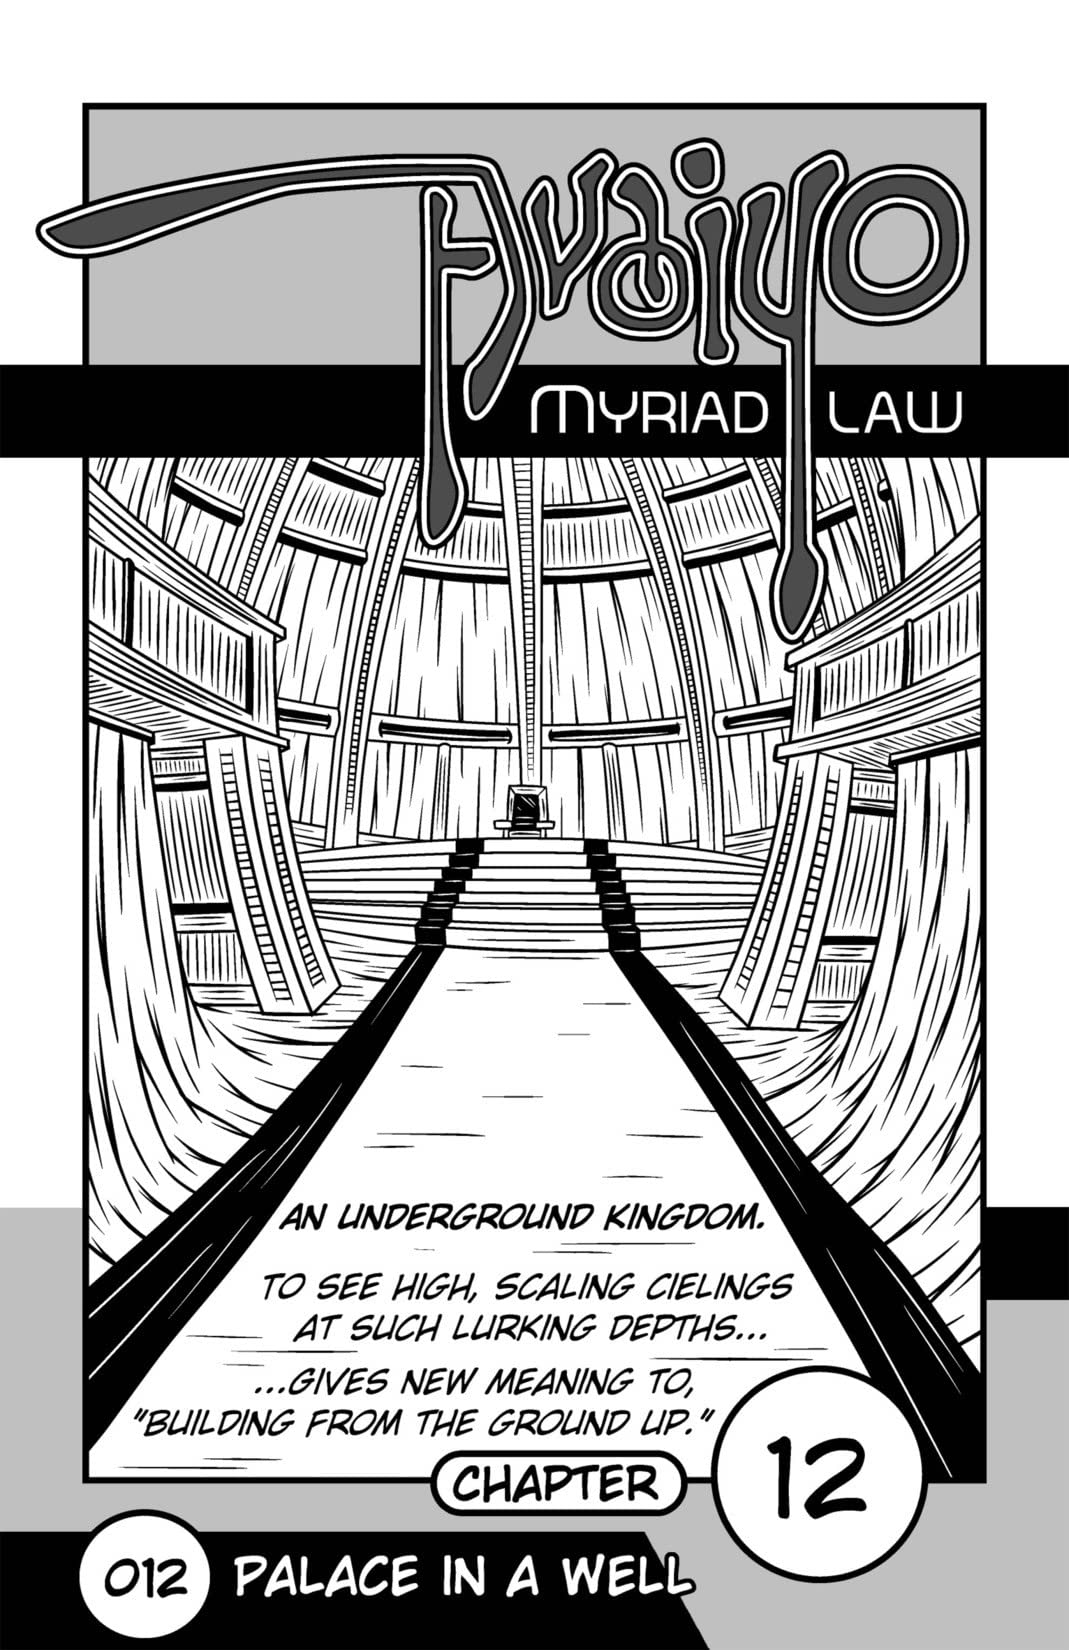 Avaiyo: Myriad Law #012